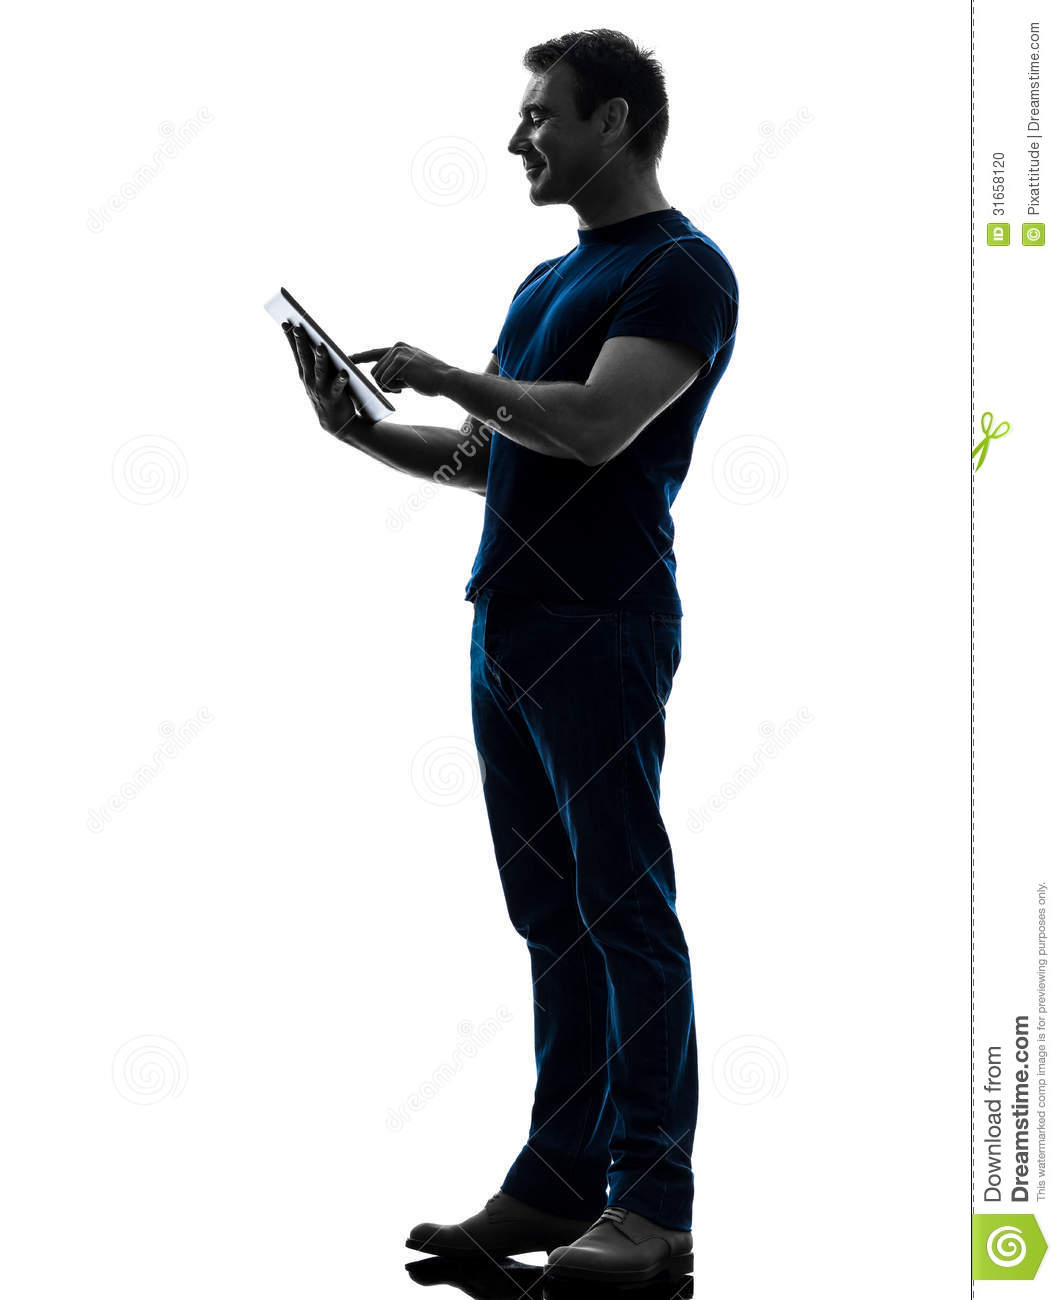 Man Touchscreen Digital Tablet Silhouette Stock Photo ...